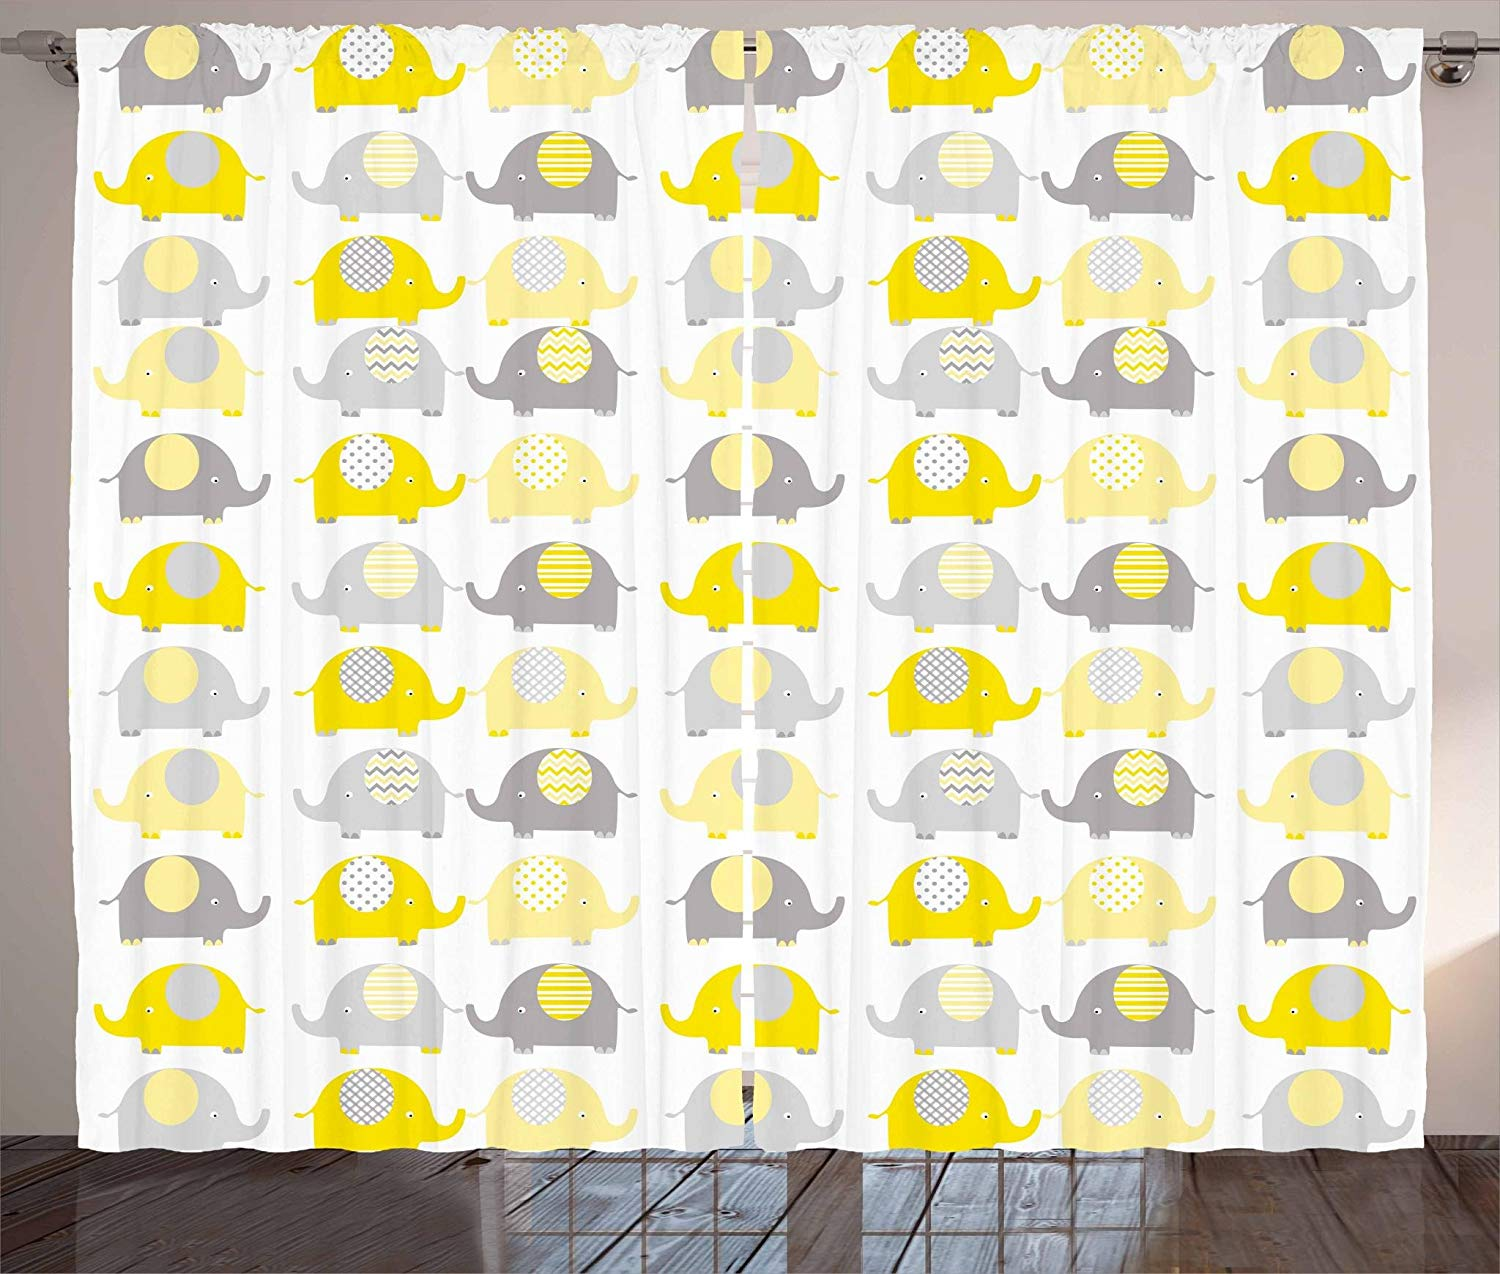 Us 2084 50 Offnursery Curtains Yellow Grey Cute Elephant Cartoon Animals With Different Patterns Asia Fauna Living Room Bedroom Window Drapes In